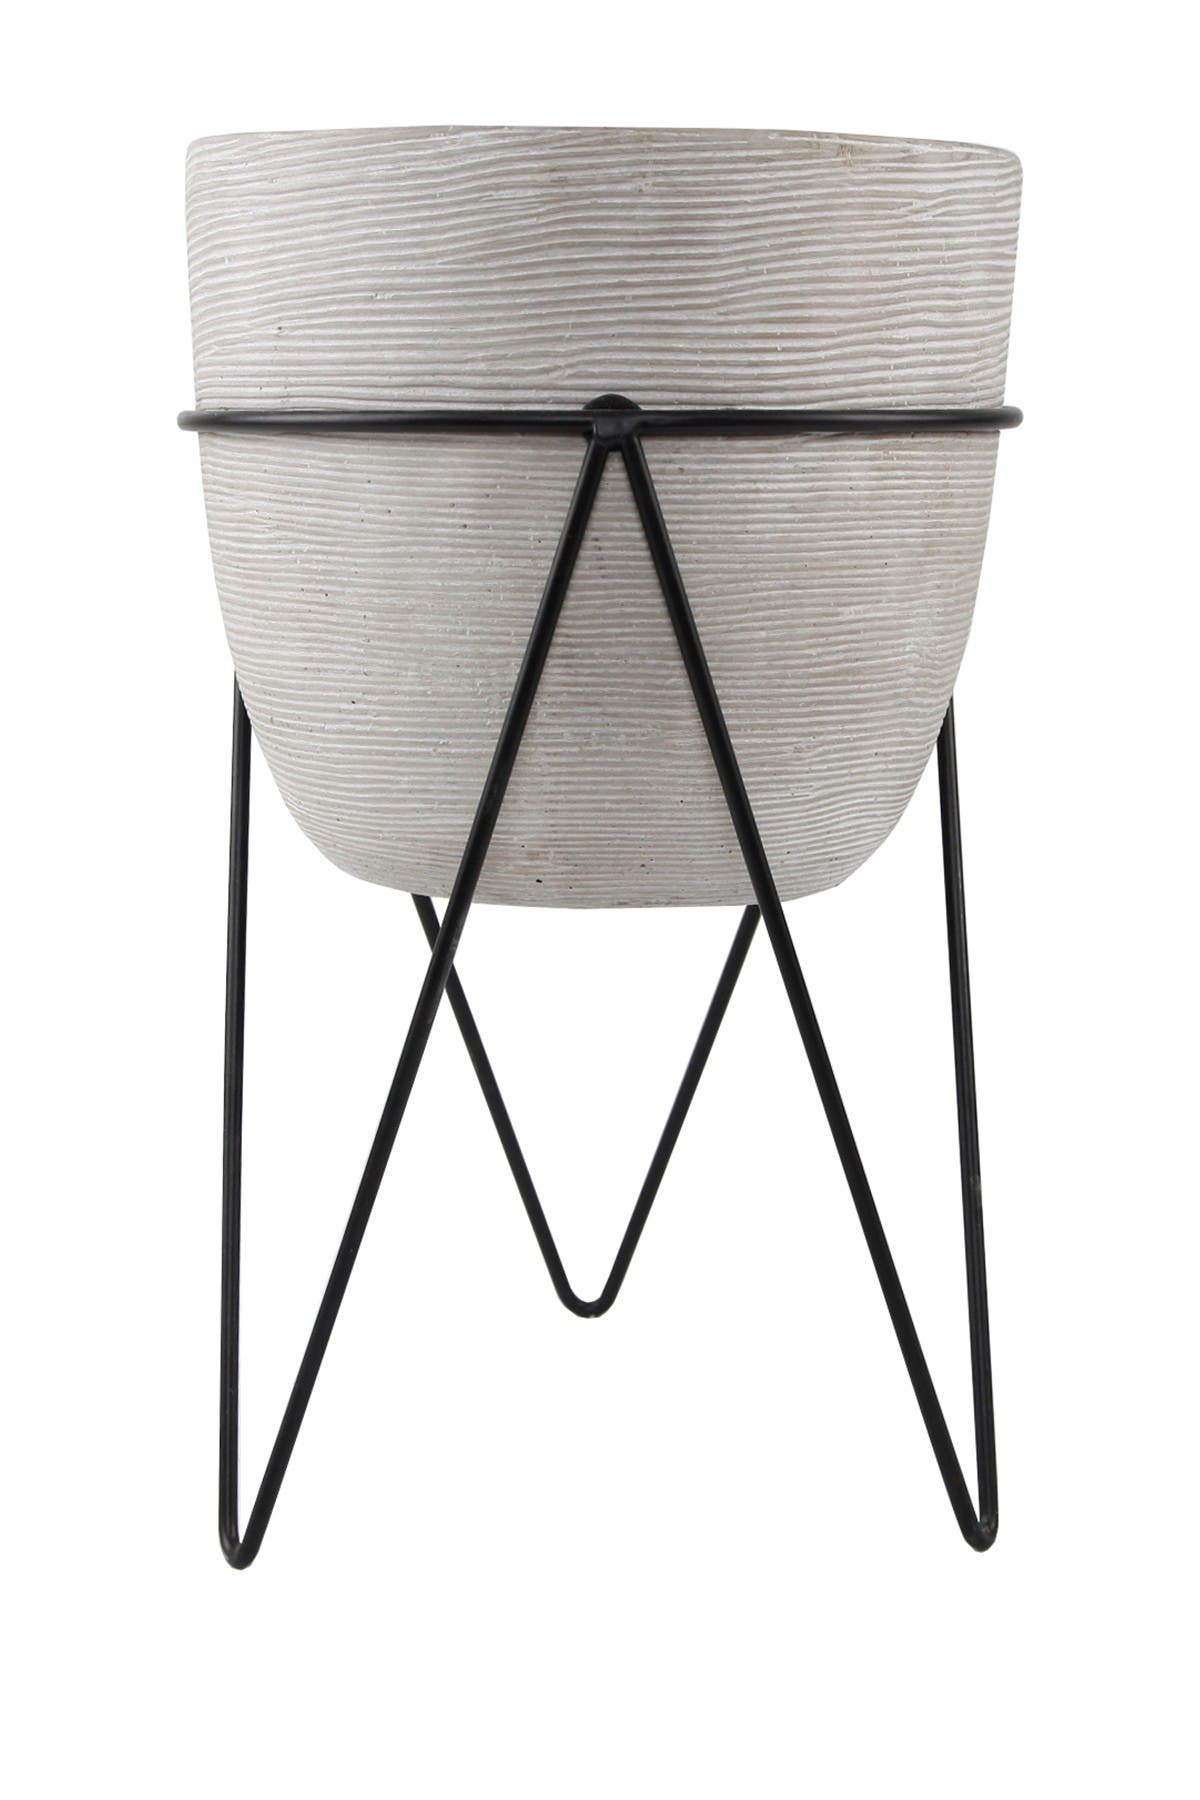 "Image of FLORA BUNDA 12.5"" Tall Grey Cement Planter on Stand"